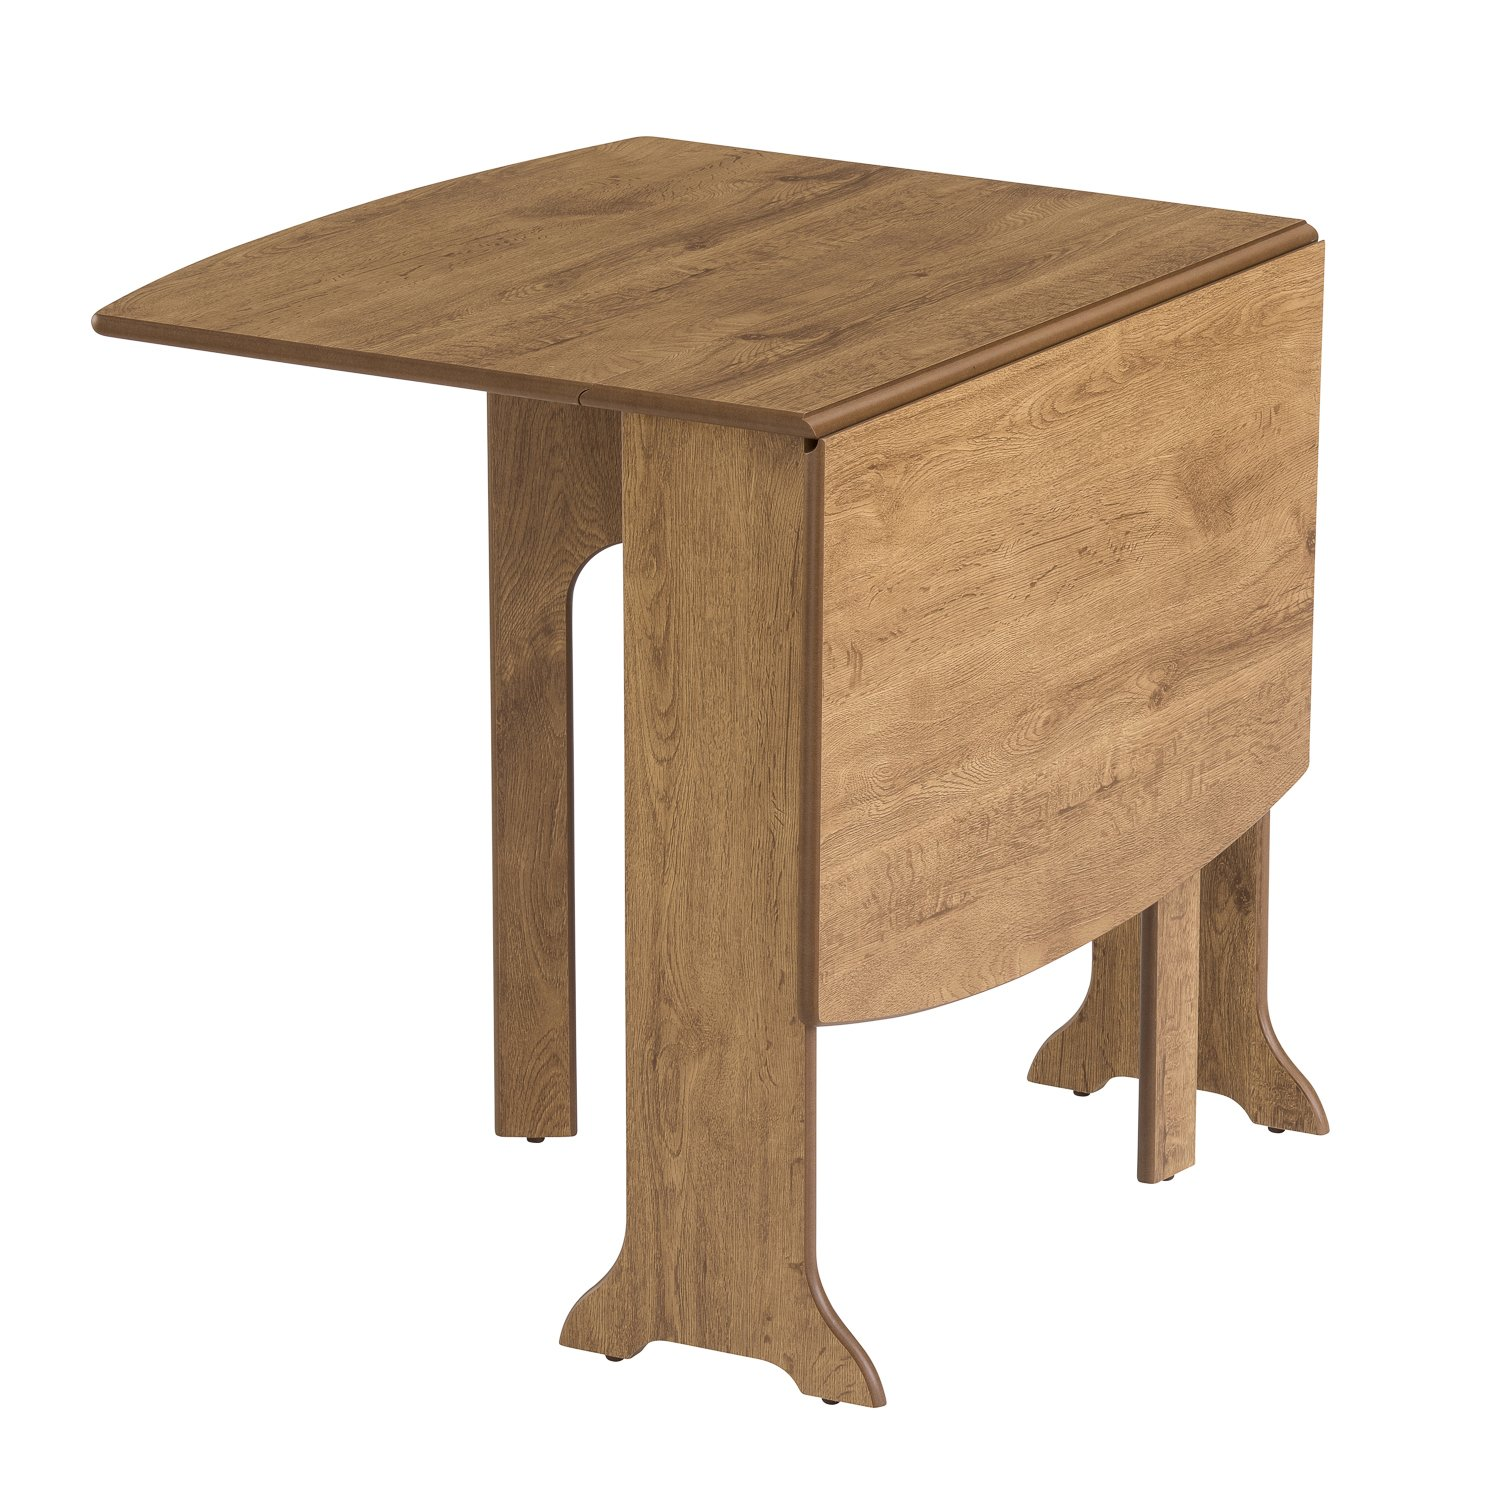 Tufftop Heat Resistant Surface 22x79X76Hcm Closed 117x79X76Hcm Open Mood Furniture HEATPROOF DEnd Gateleg Drop Leaf Table in Warm Oak Dining or Kitchen Seats 6 Folding Table for Small Spaces